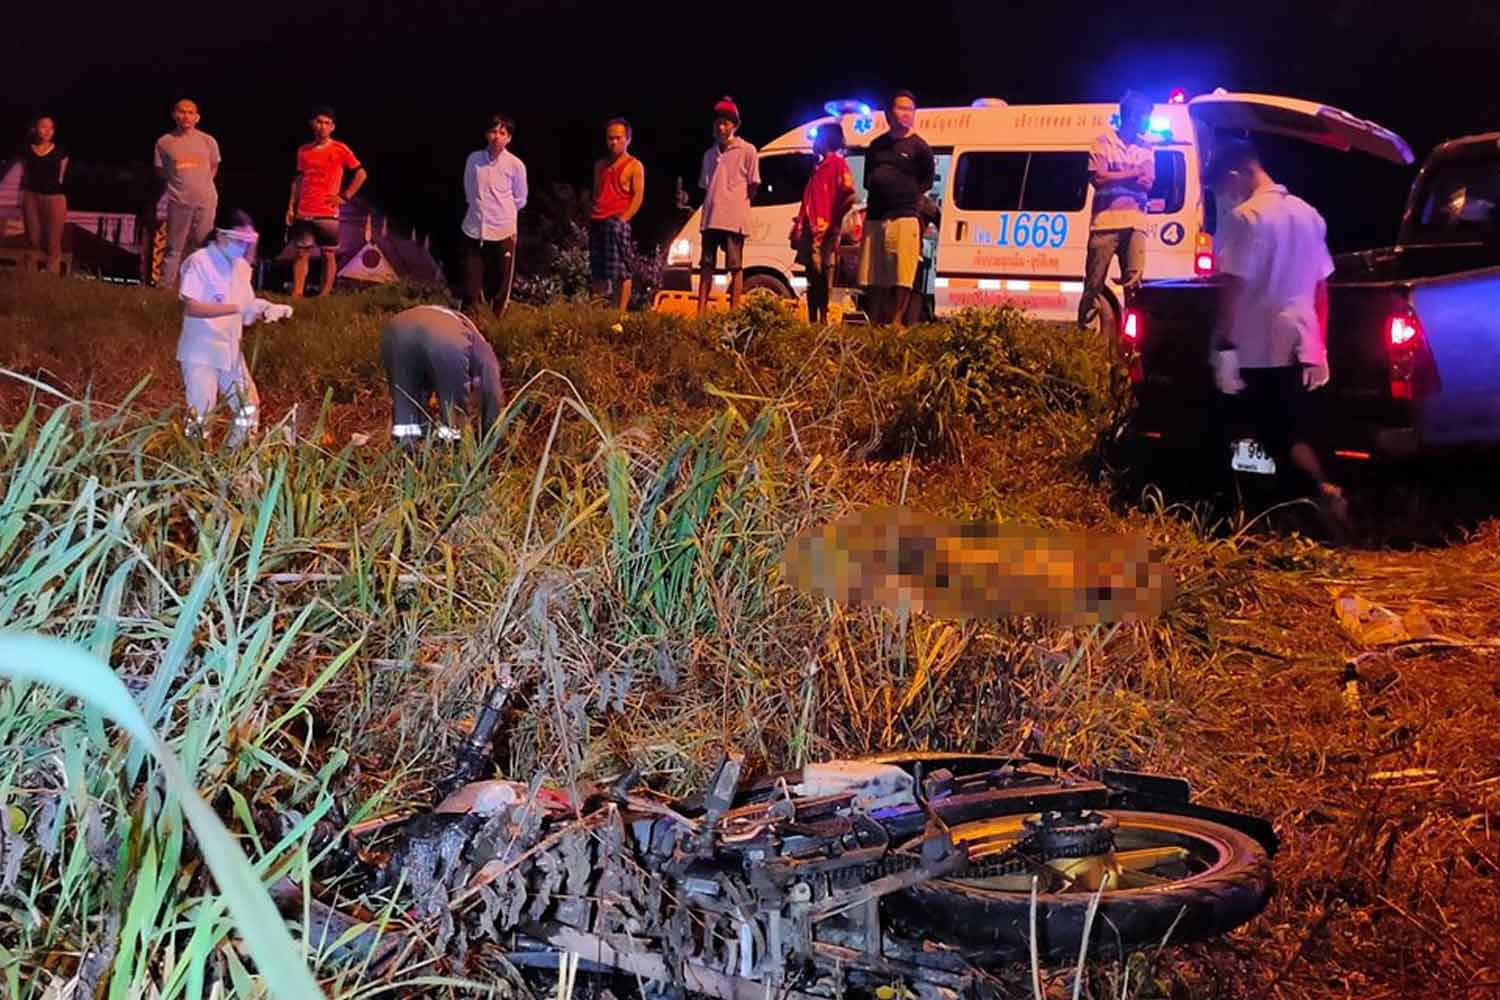 Police and rescue workers at the scene of the crash between a motorcycle and pickup truck on Mancha Khiri-Phra Yuen road in Mancha Khiri district, Khon Kaen province, early Wednesday. Two men on the motorcycle were killed. (Photo: Chakrapan Nathanri)